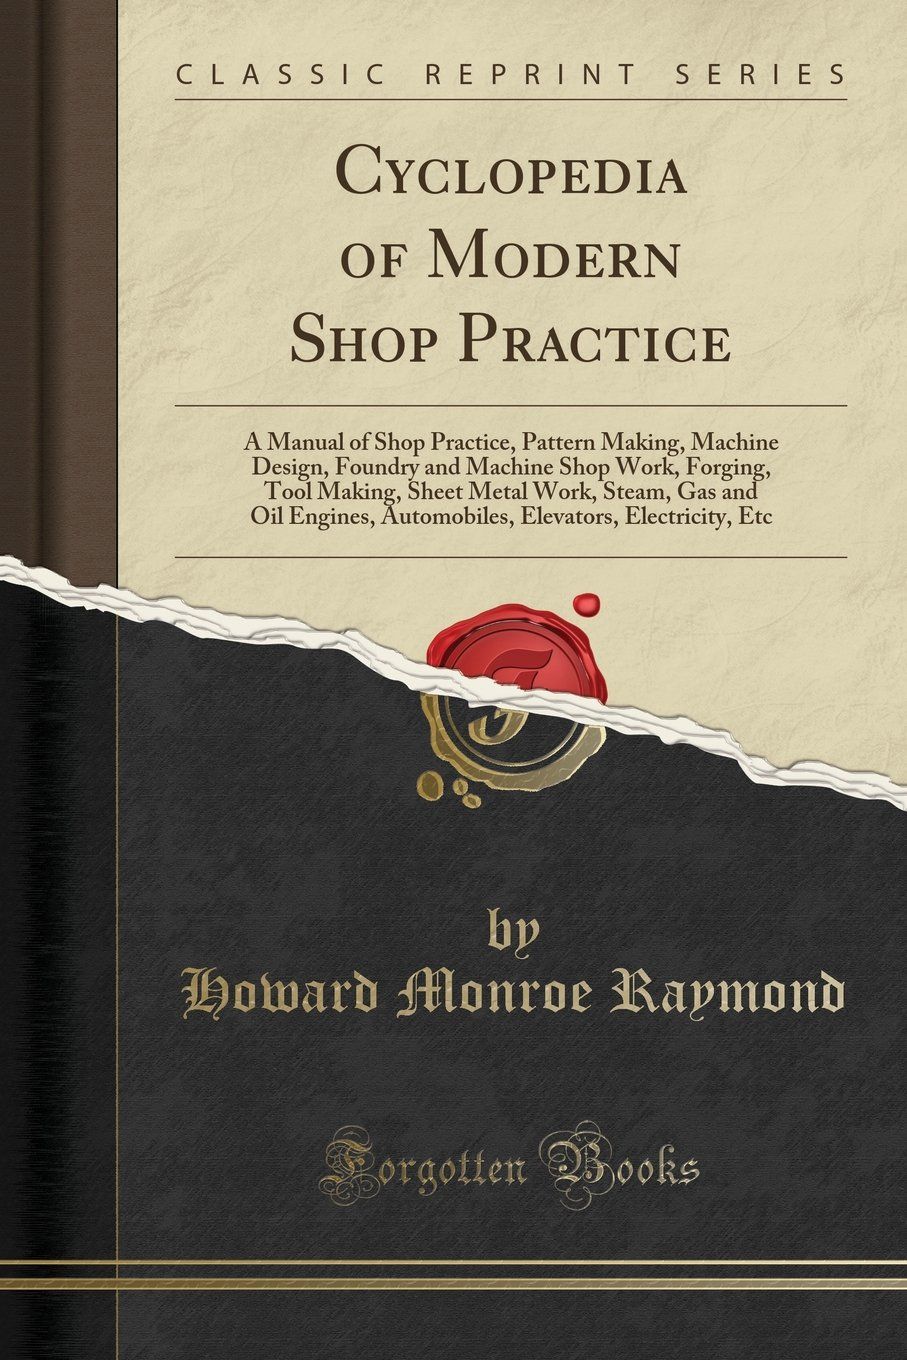 Cyclopedia of Modern Shop Practice: A Manual of Shop Practice, Pattern  Making, Machine Design, Foundry and Machine Shop Work, Forging, Tool Making,  .